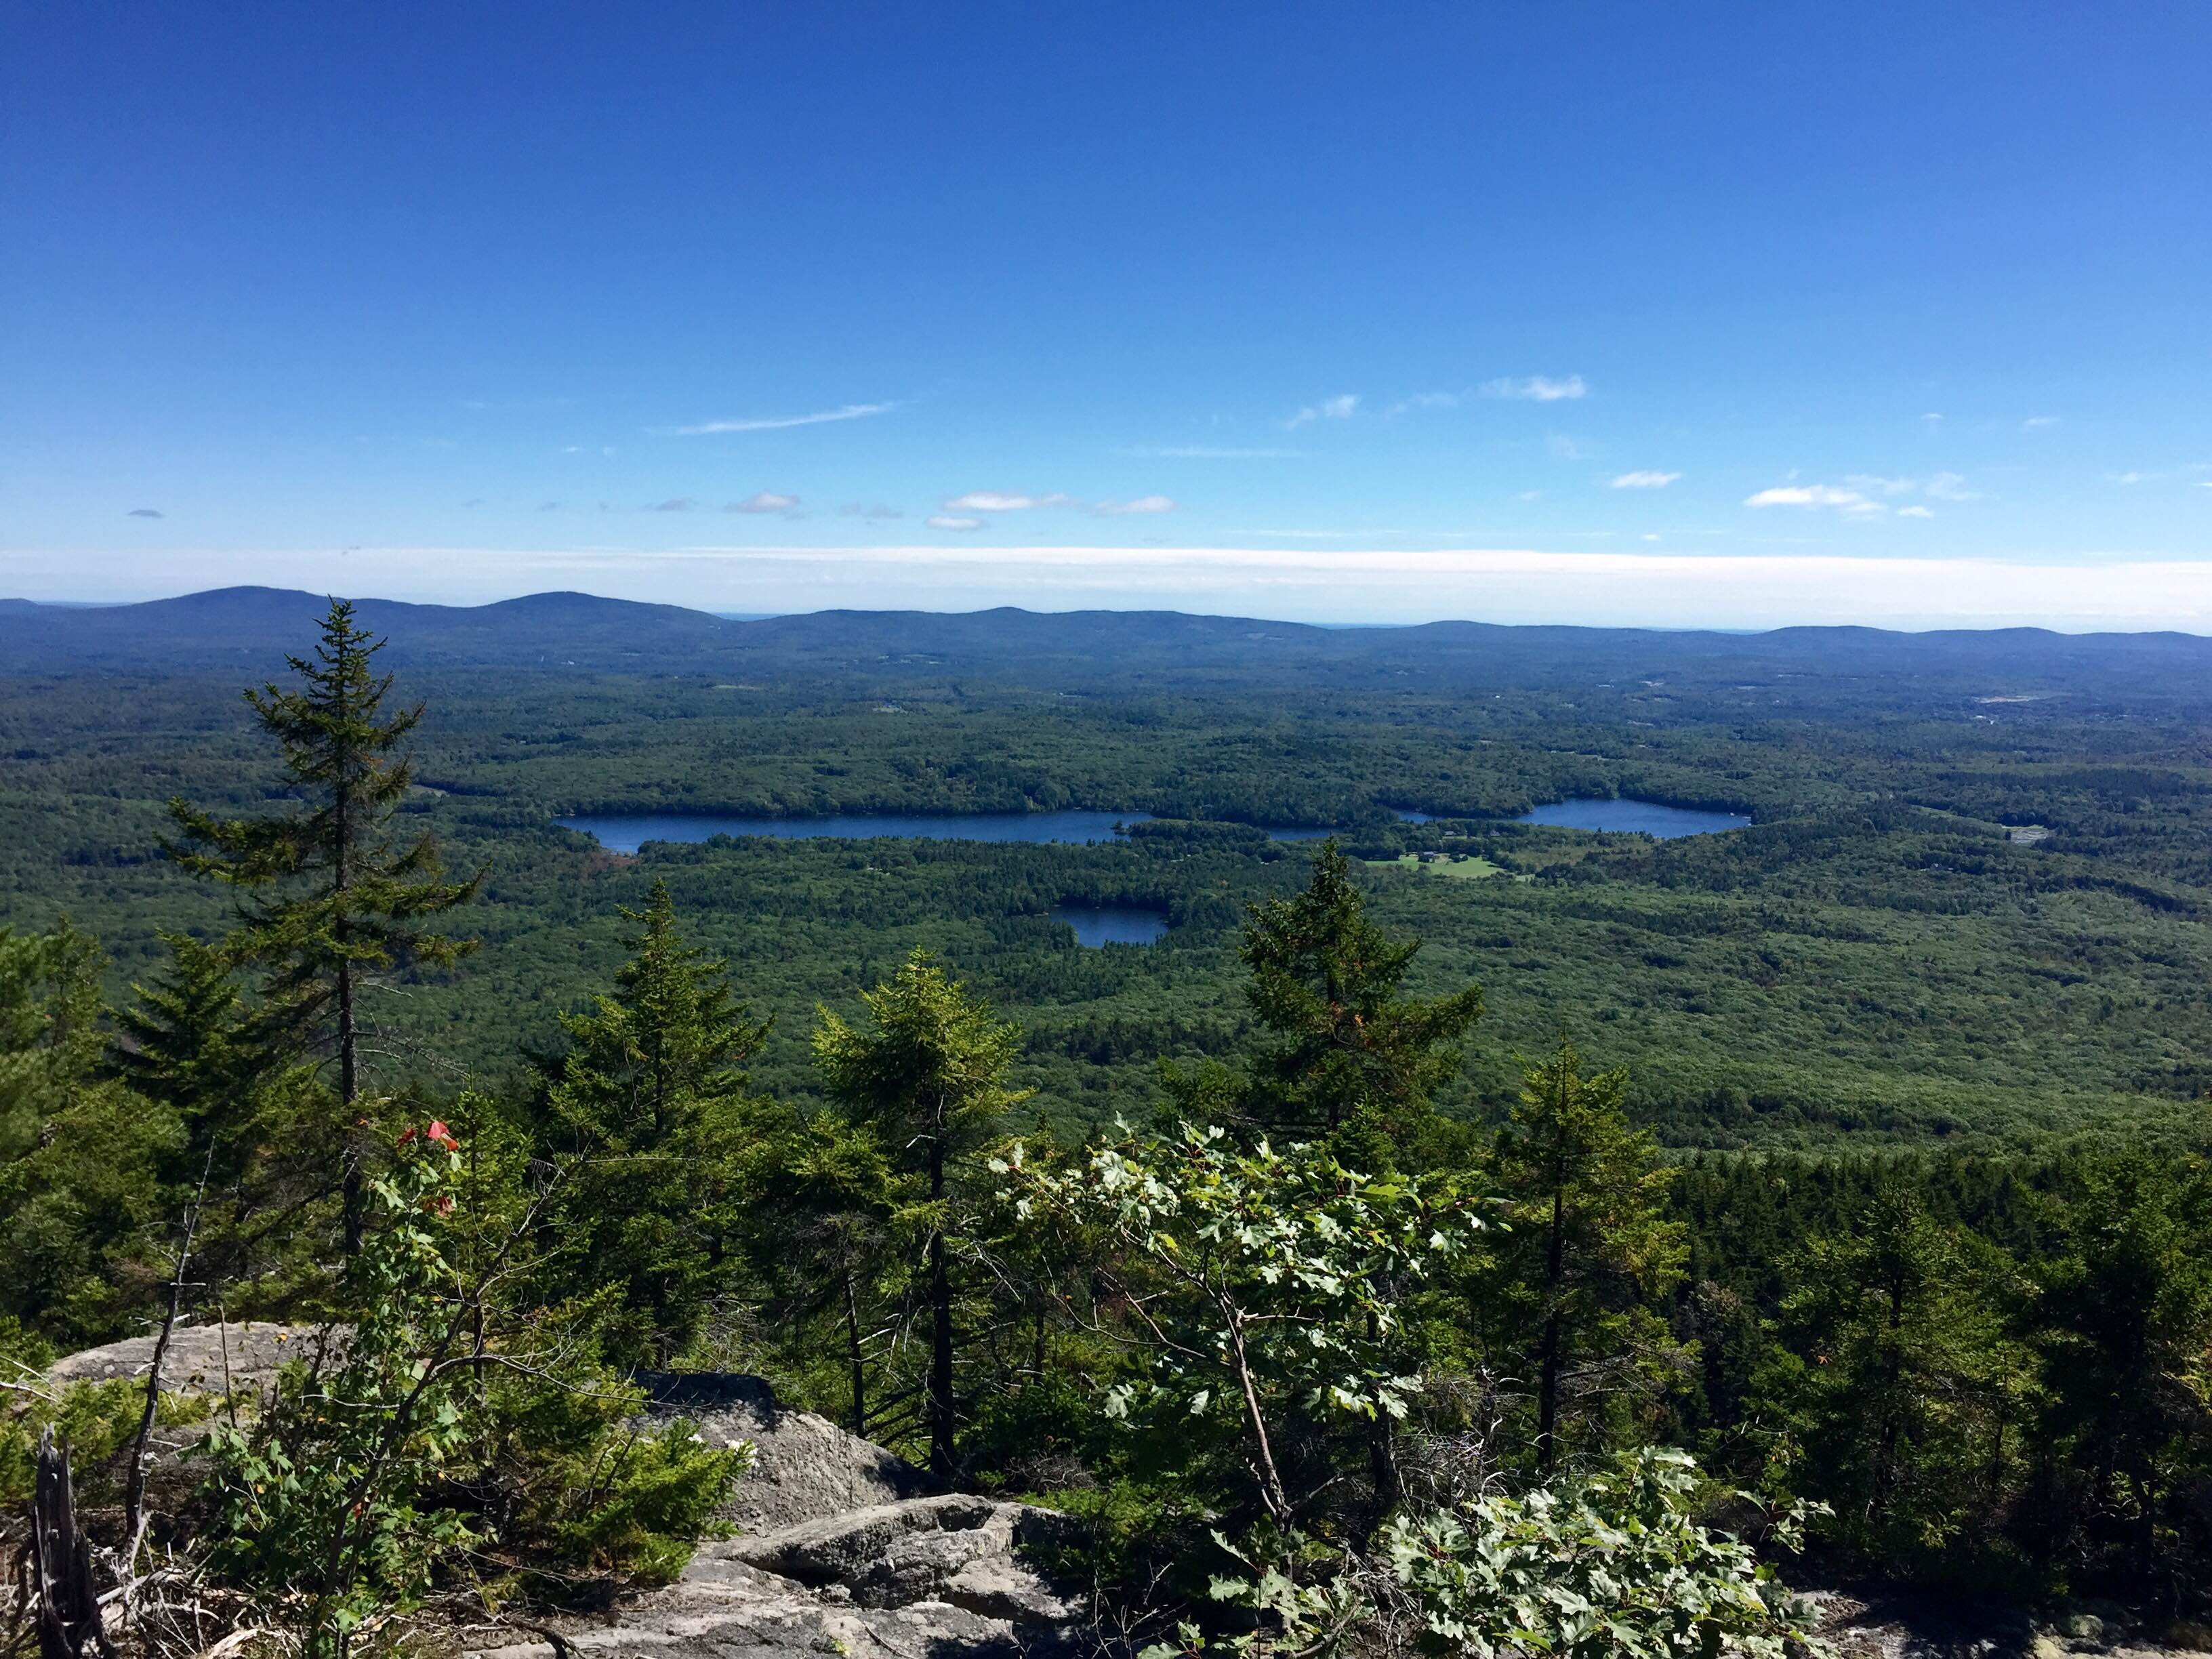 Mount Monadnock in New Hampshire.